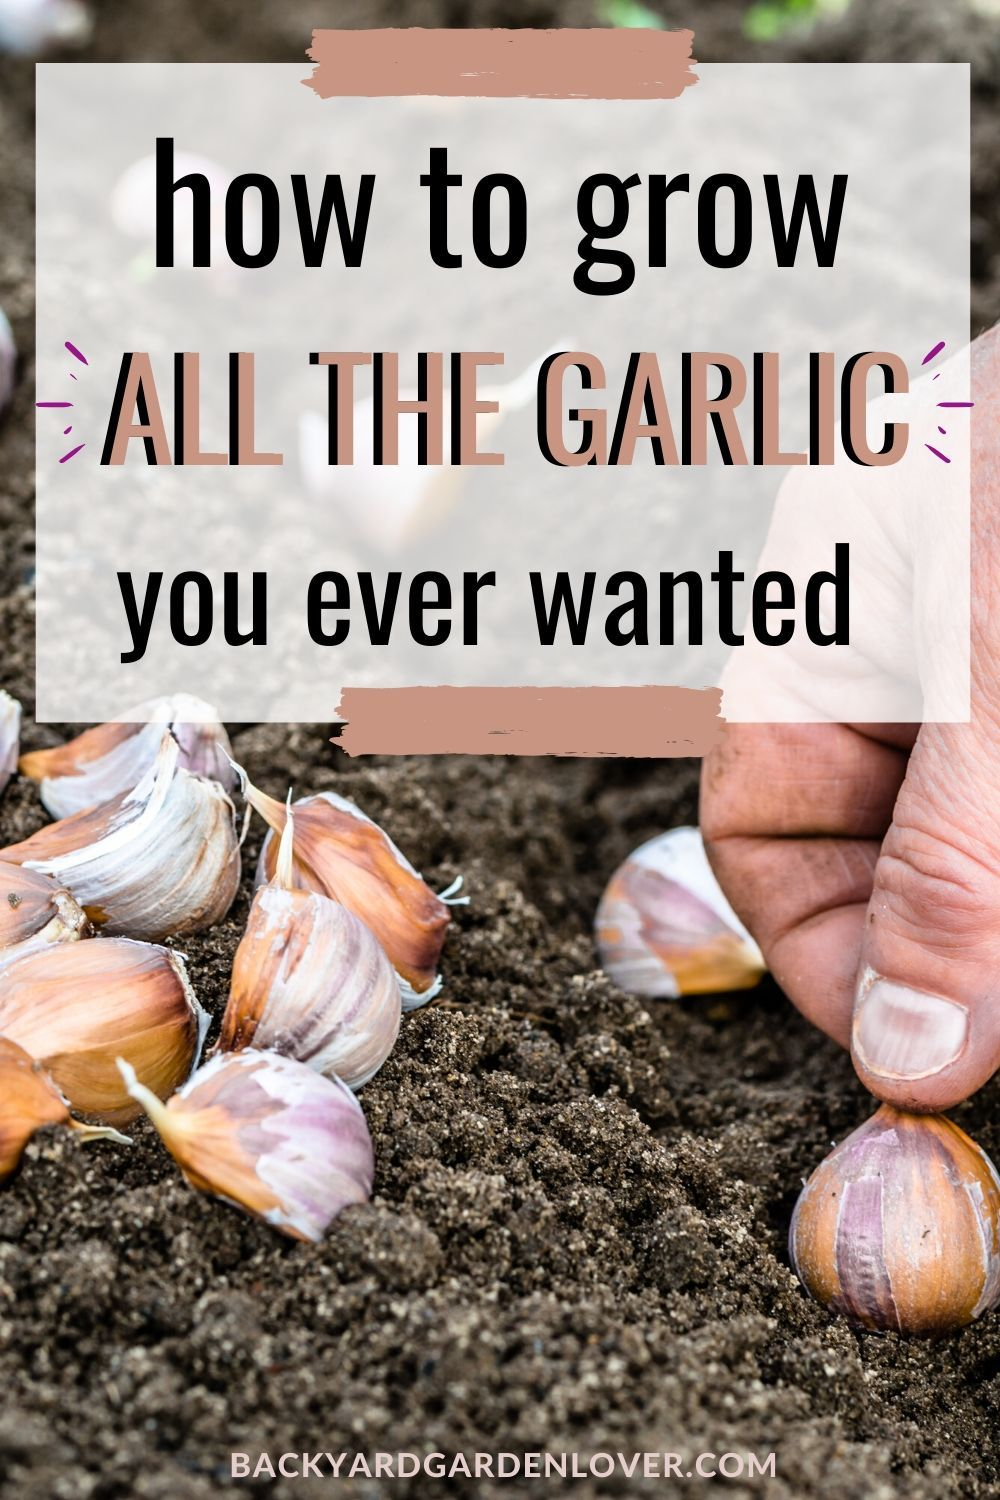 Resistant to disease, and delicious in cooking, garlic is easy to grow and resistant to diseases! See the few things you need to keep in mind when planting garlic and learn how to preserve it for later.  #garlic #howtogrowgarlic #vegetablegarden #gardeningtips #organicgardening #homesteading